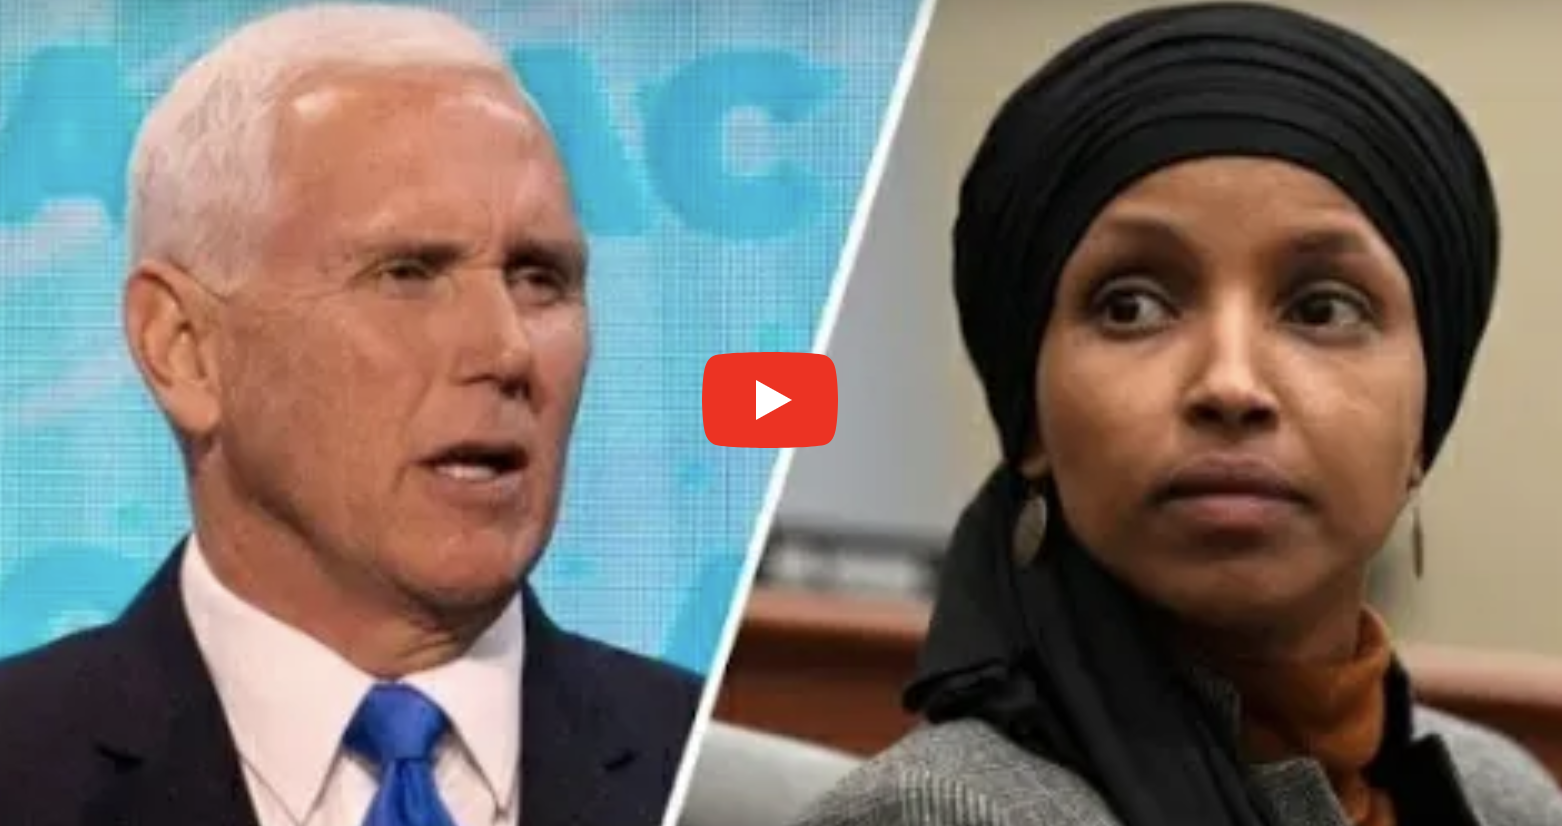 vp pence lays down the law  calls for ilhan omar u2019s removal